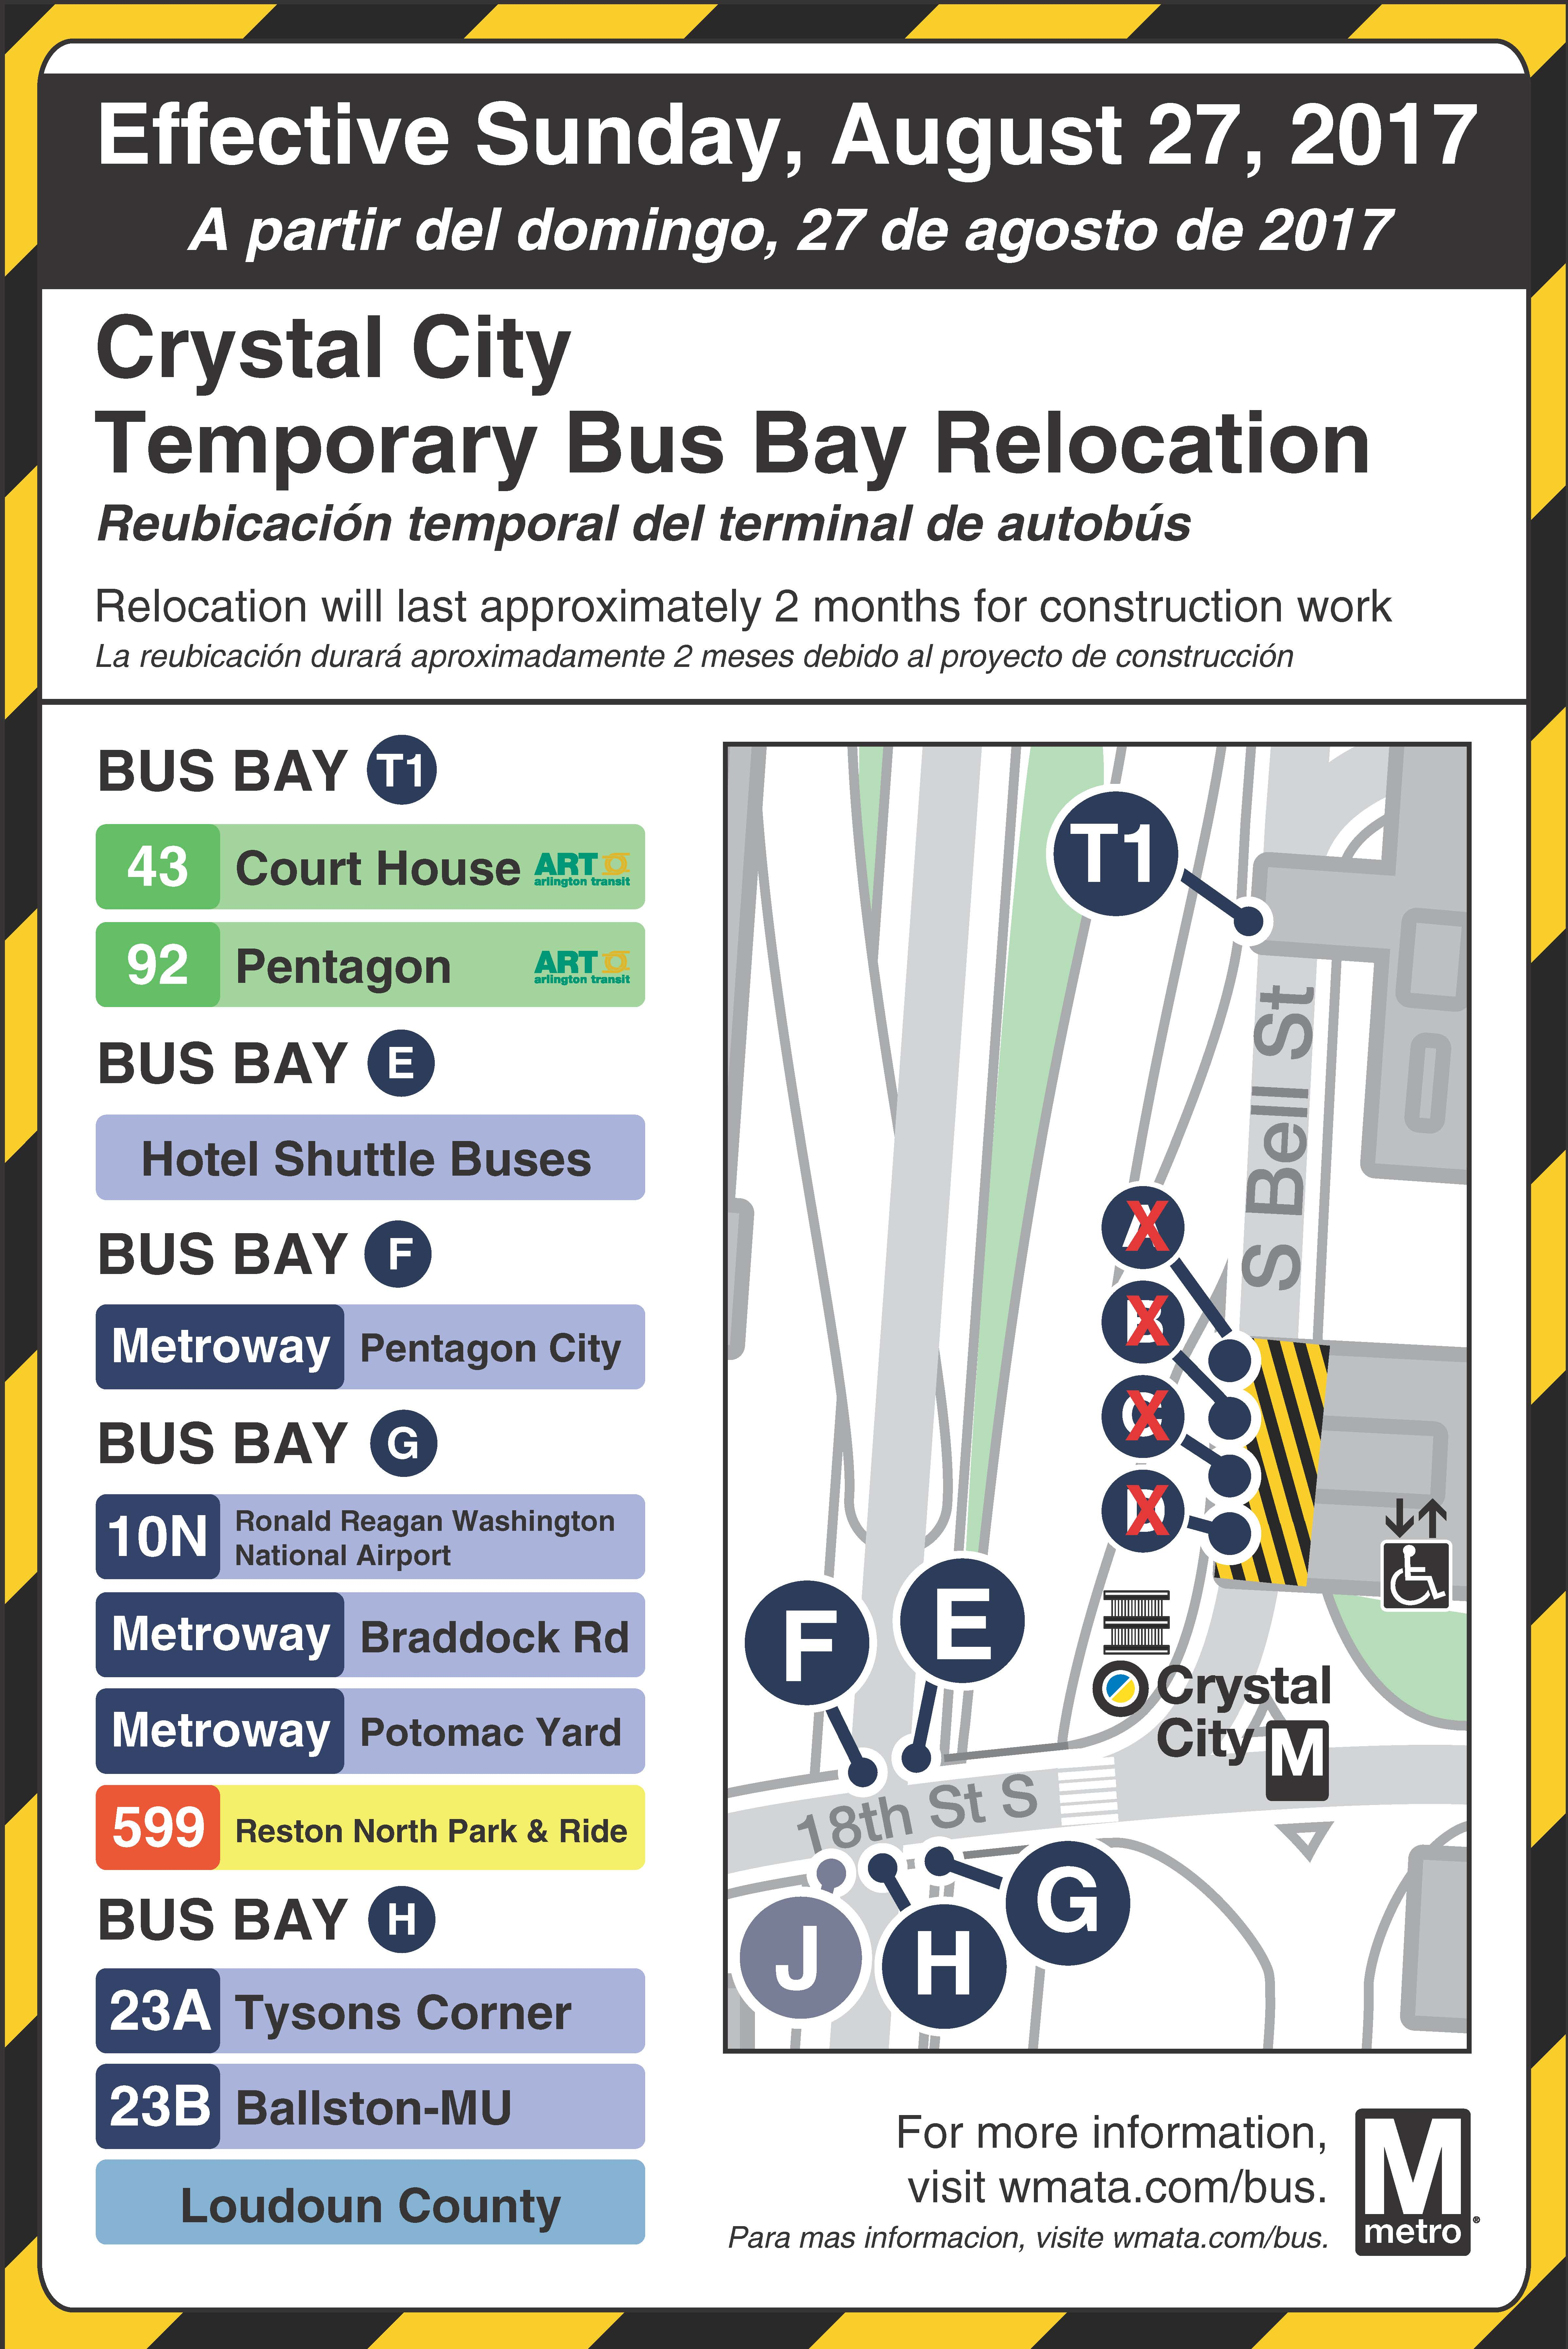 Crystal City Bus Bay Relocation